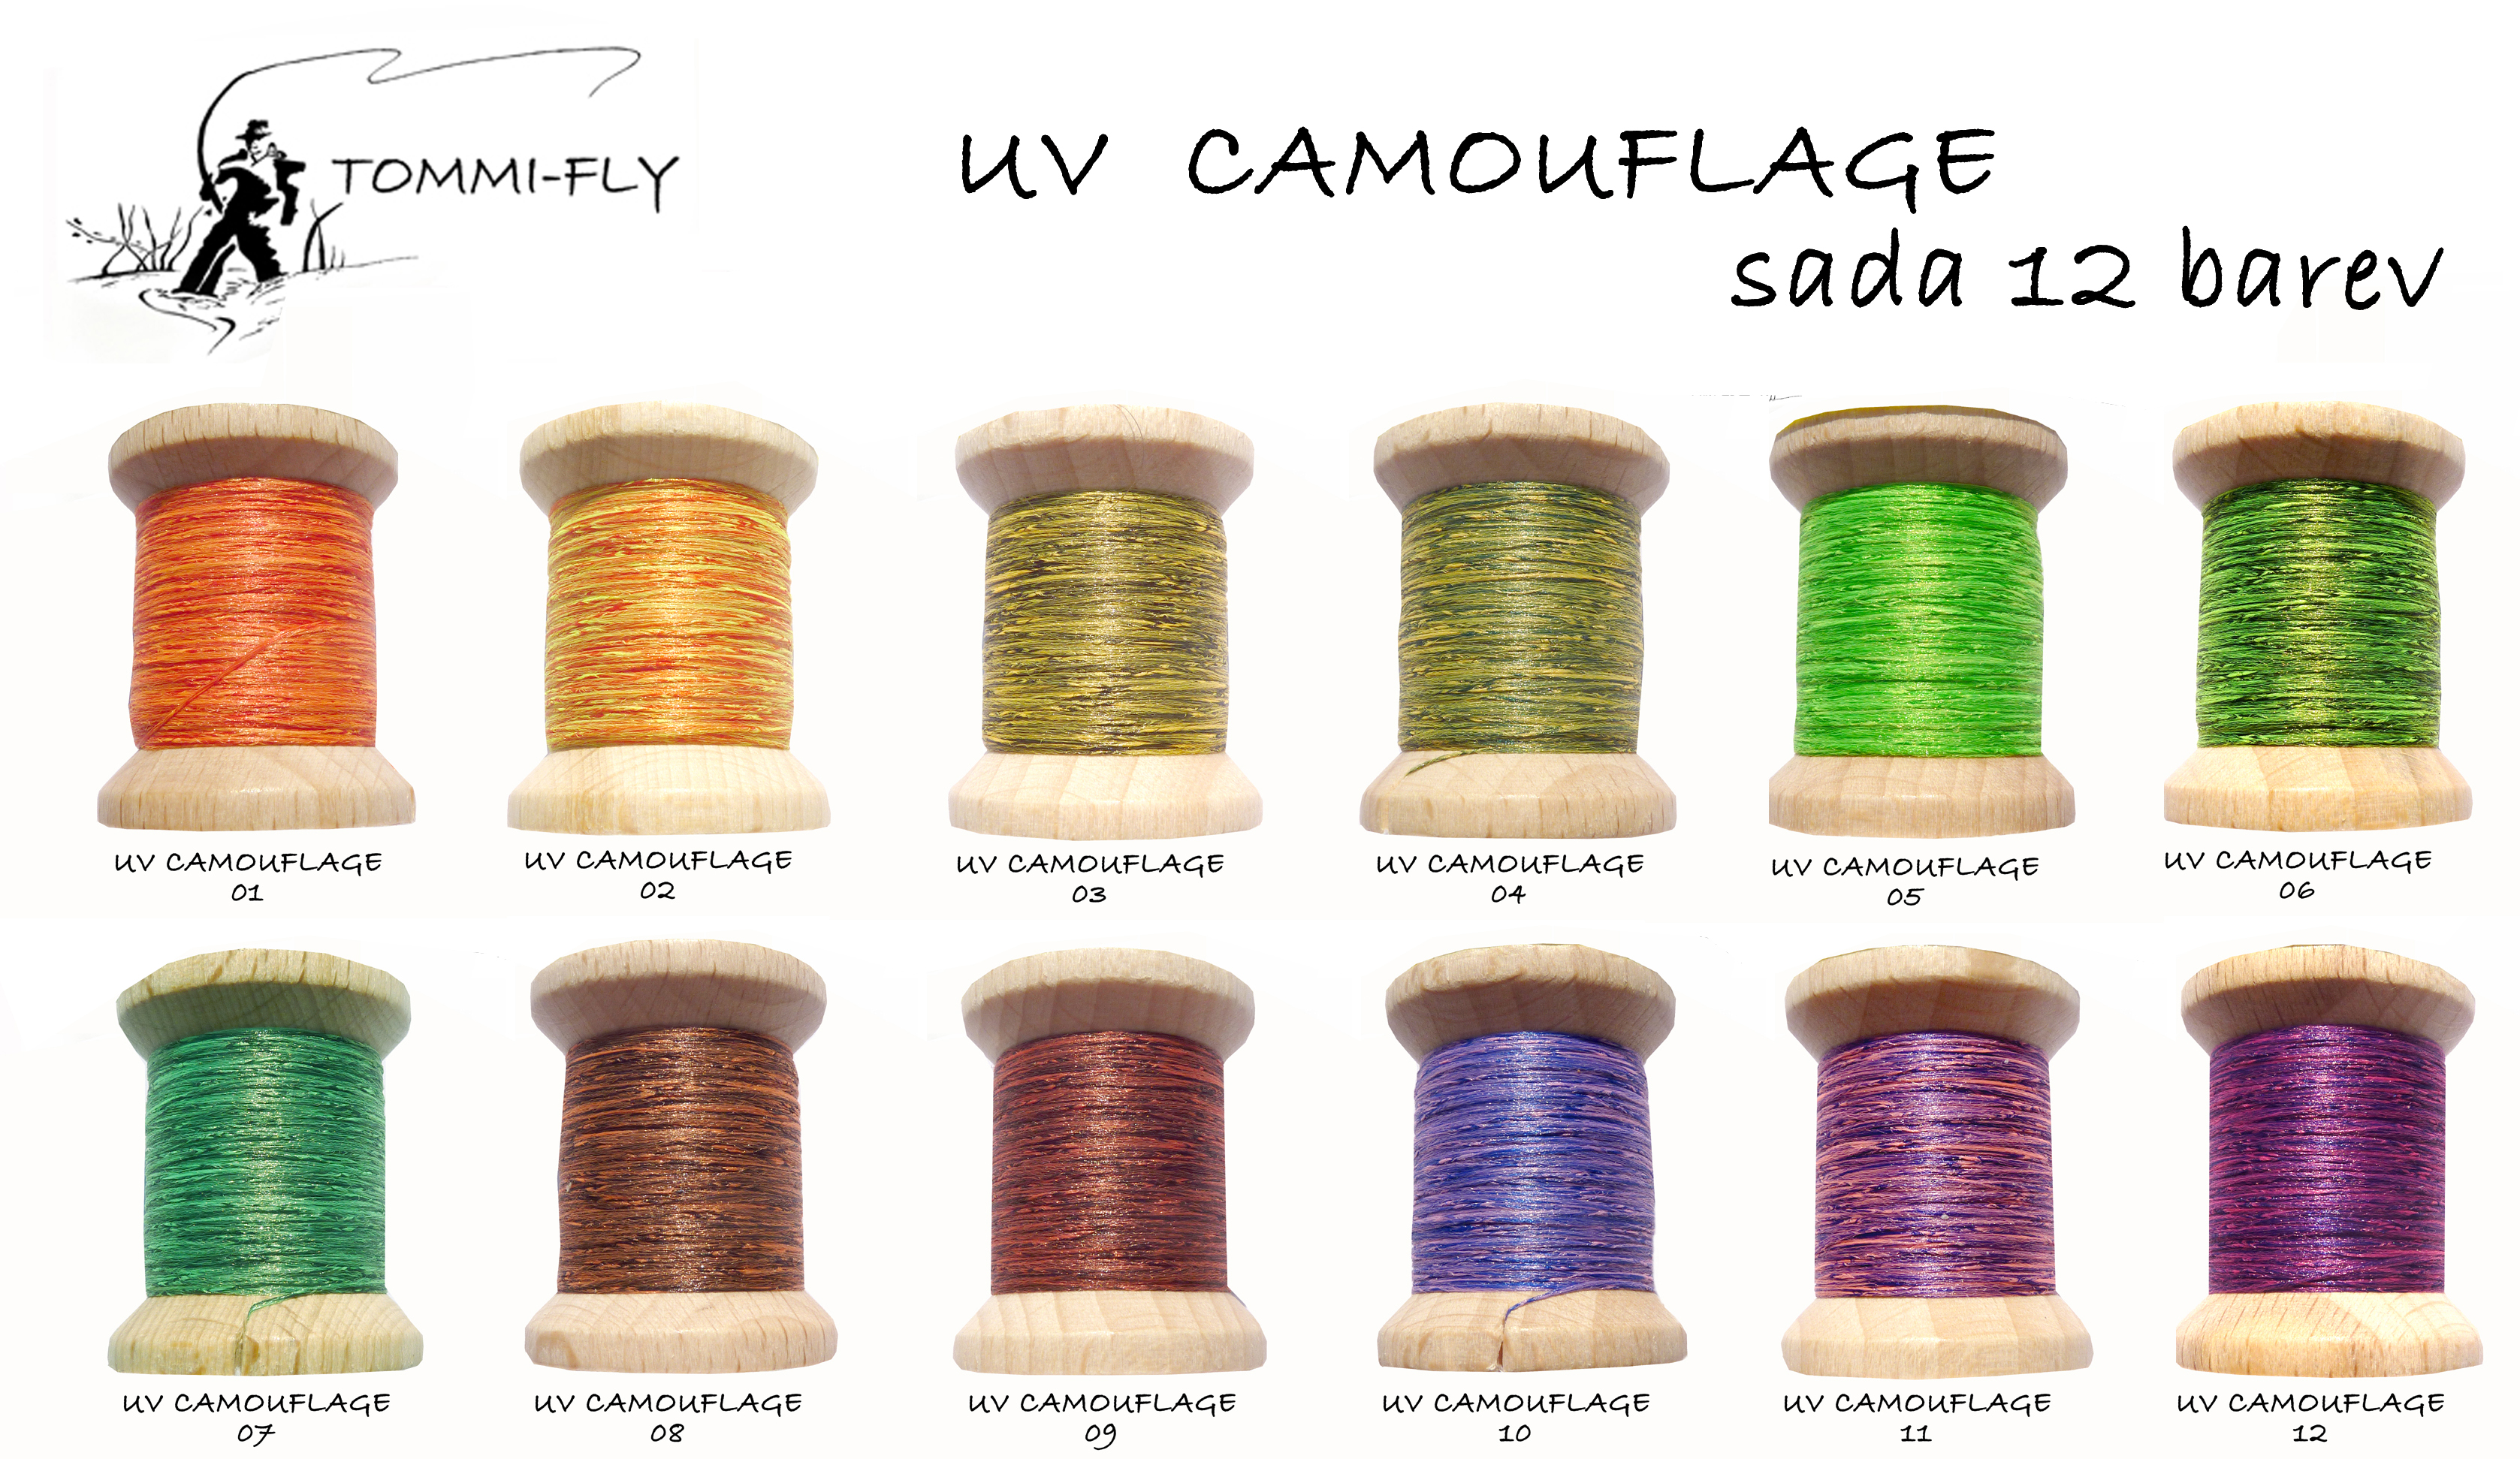 UV CAMOUFLAGE THREAD - 12 barev